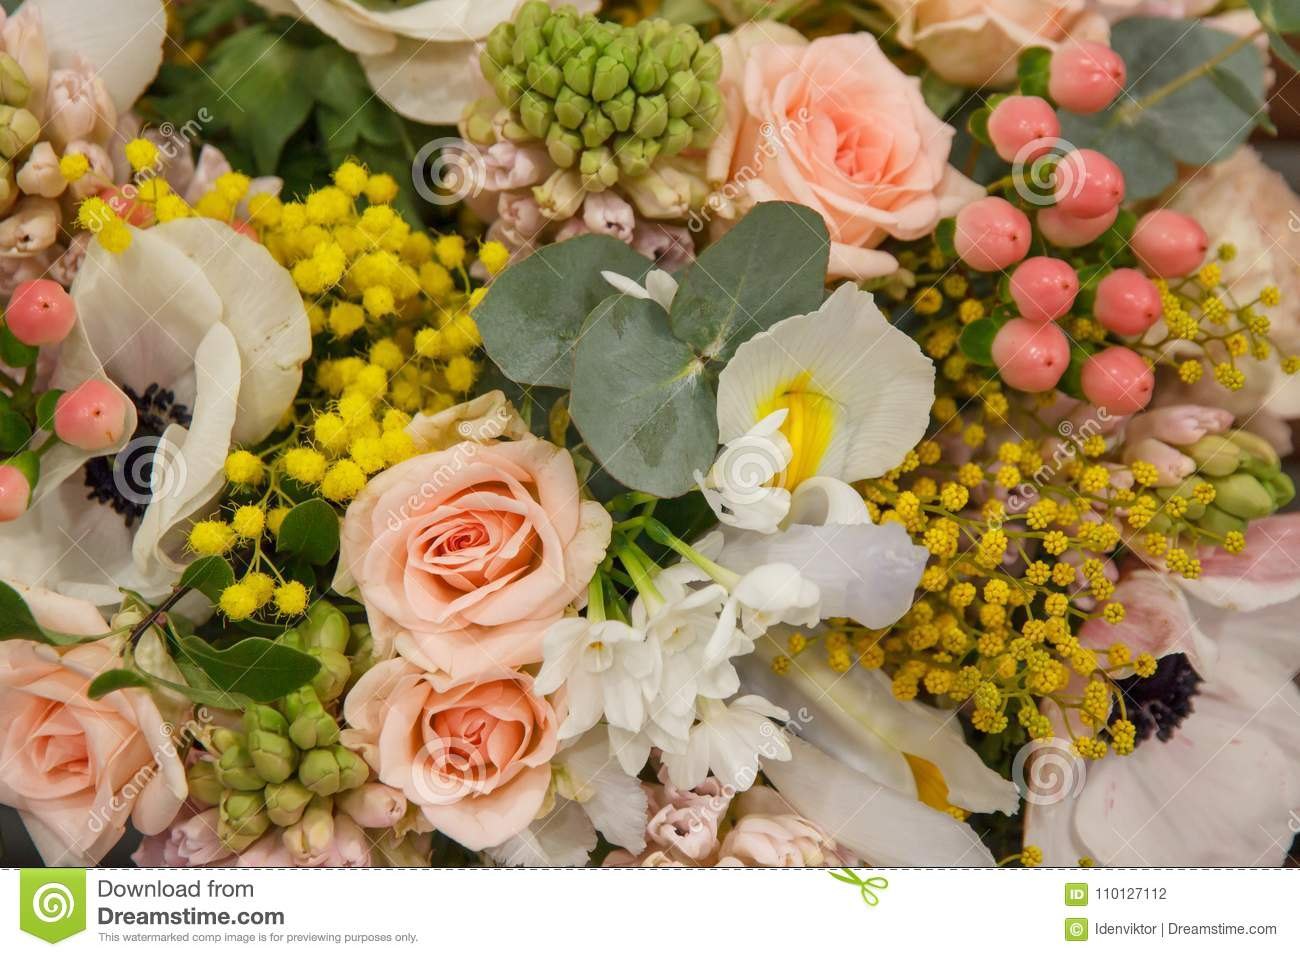 White yellow pink bouquet with different flowers closeup flowers download comp izmirmasajfo